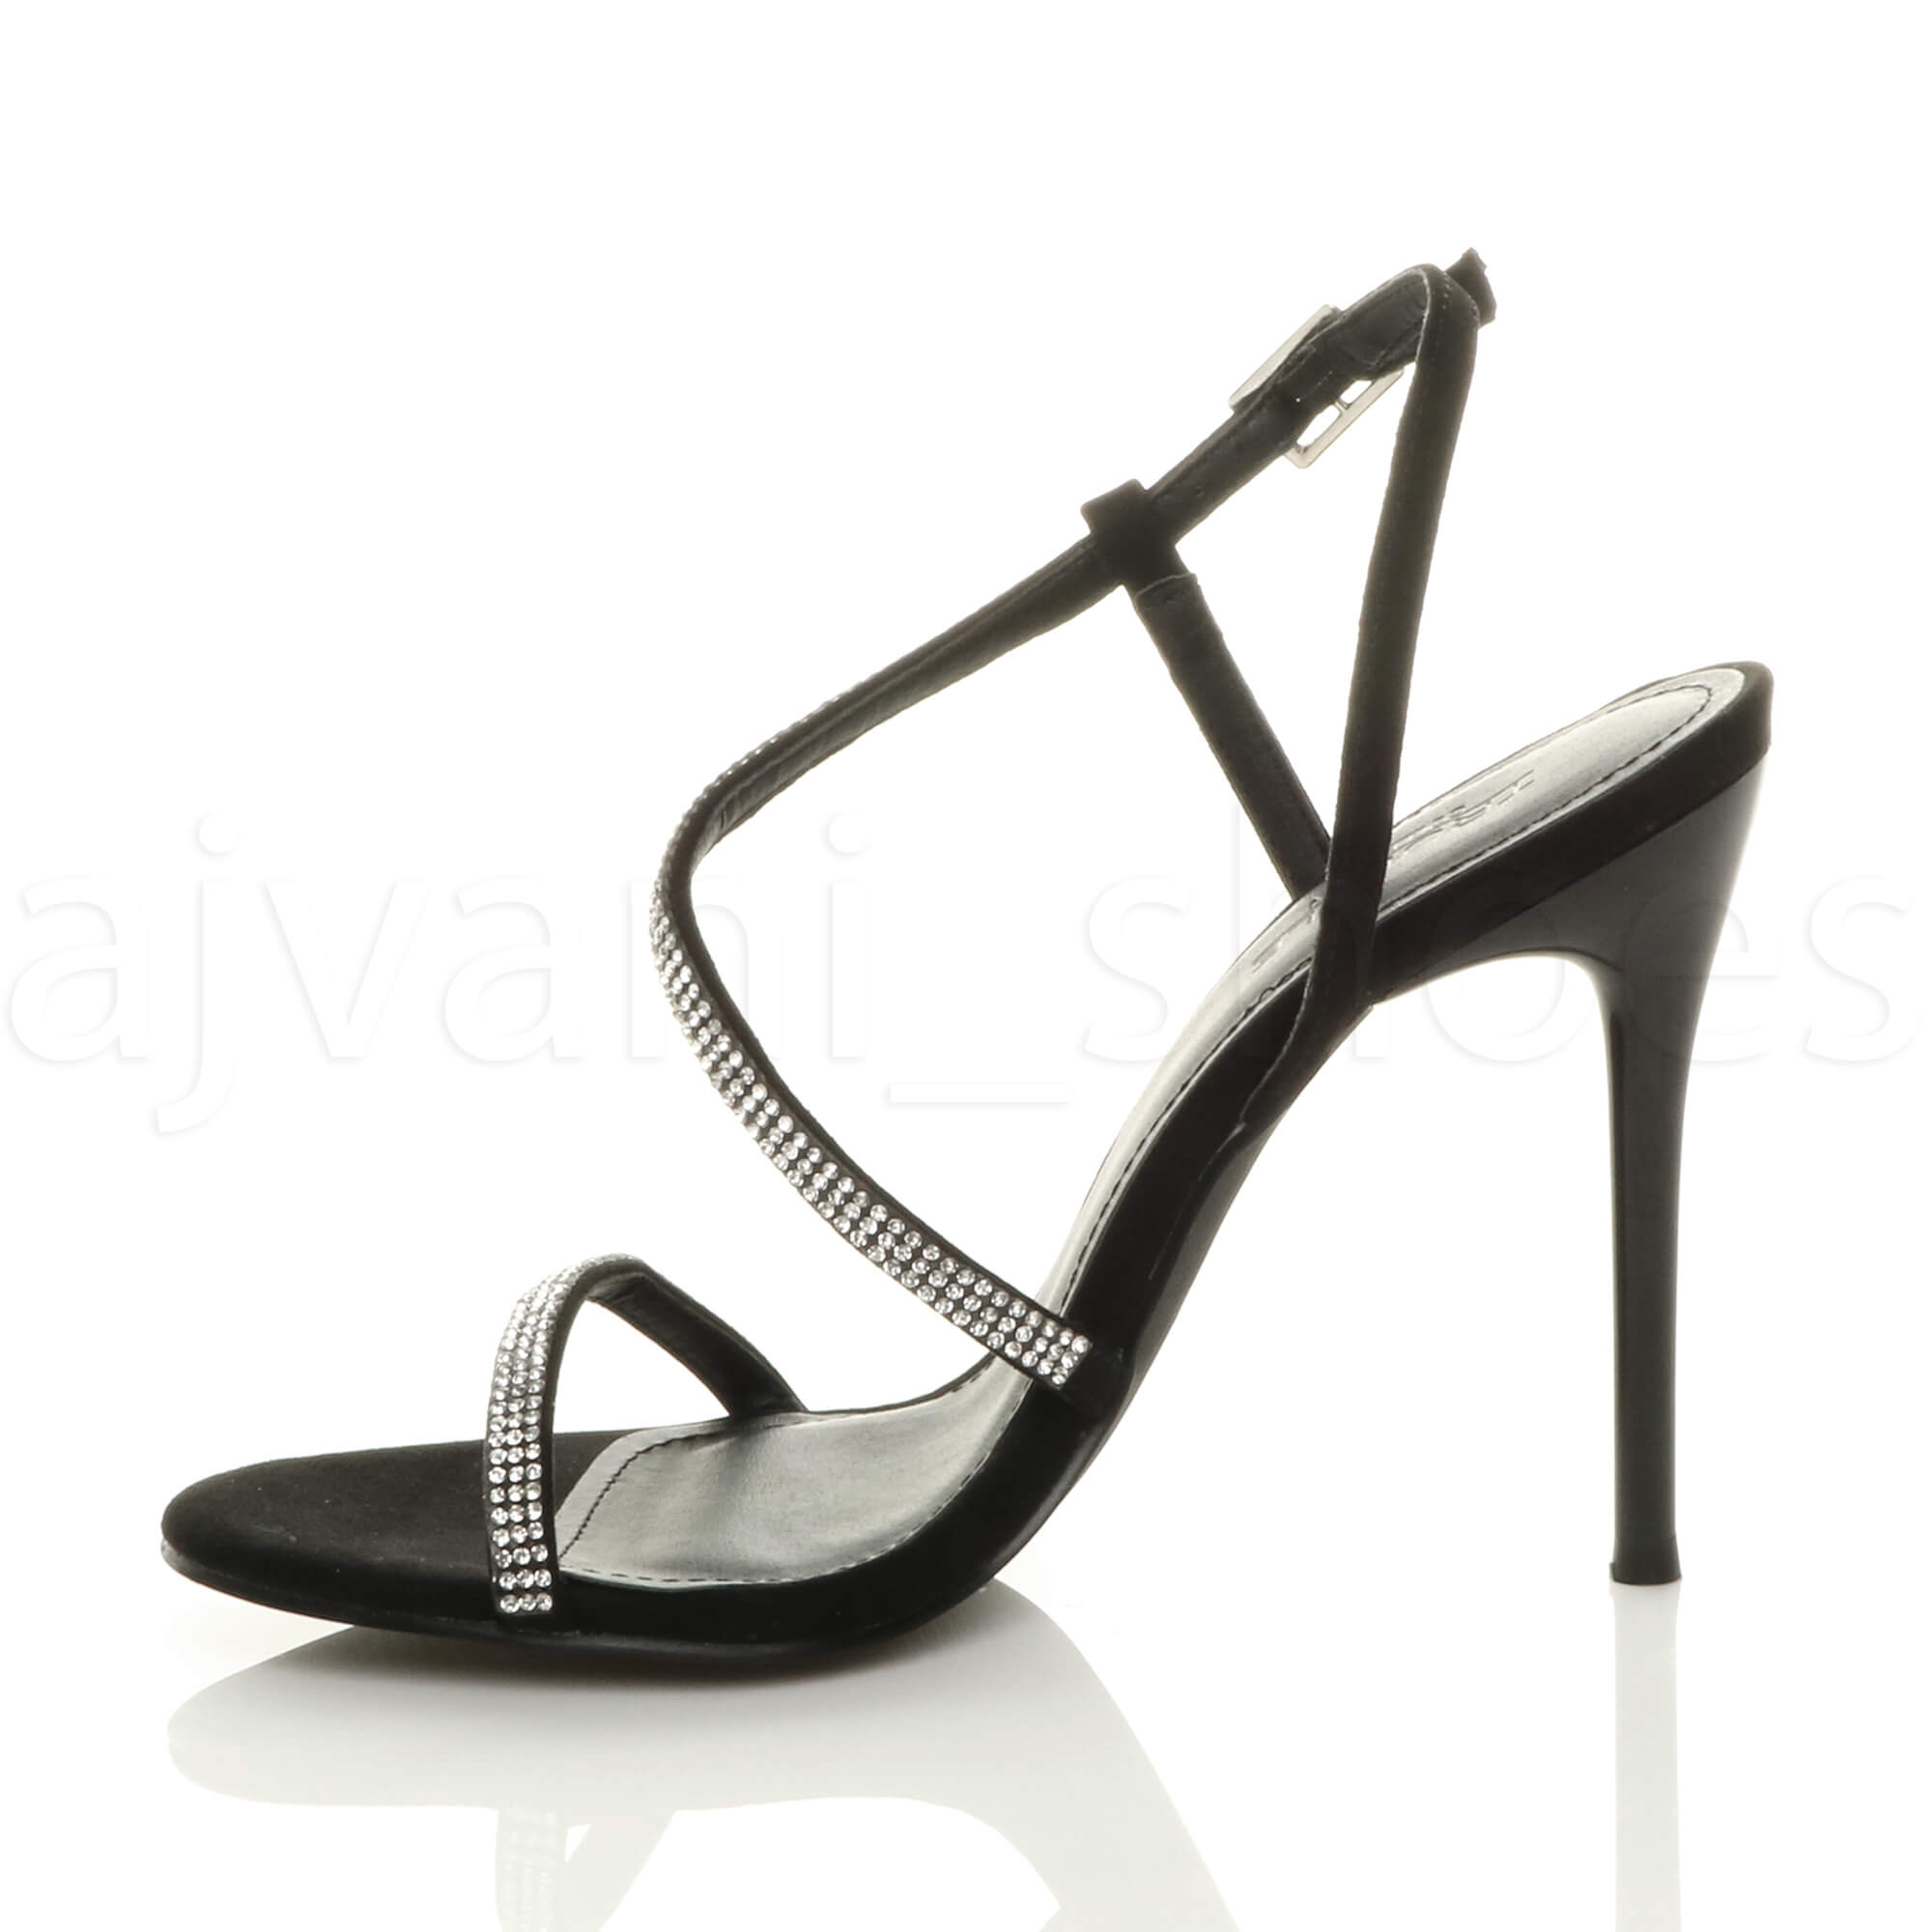 WOMENS-LADIES-HIGH-HEEL-DIAMANTE-BARELY-THERE-STRAPPY-EVENING-SANDALS-SIZE thumbnail 4